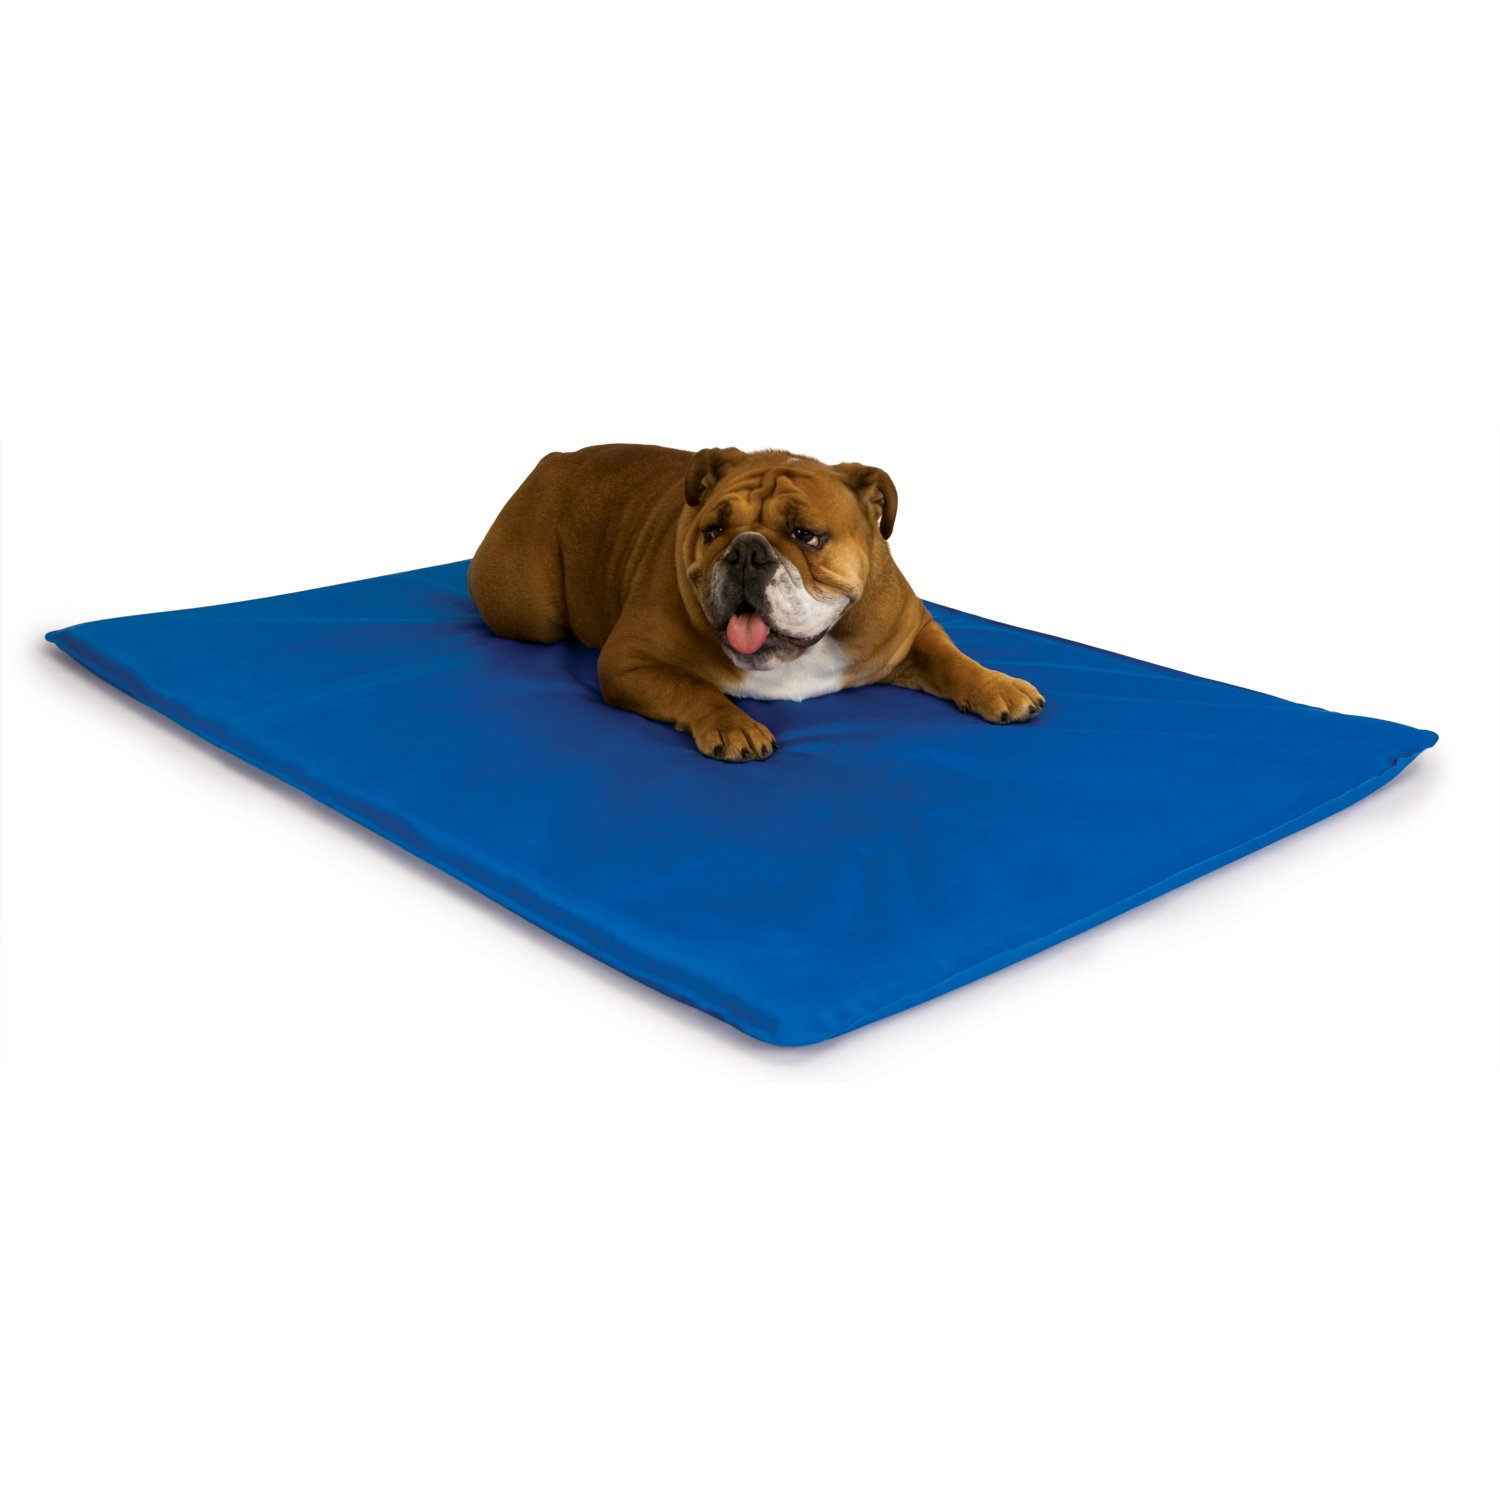 Medium 22-Inch by 32-Inch K&H Manufacturing Cool Bed III Cooling Dog Bed, Medium, 22-Inch by 32-Inch, bluee